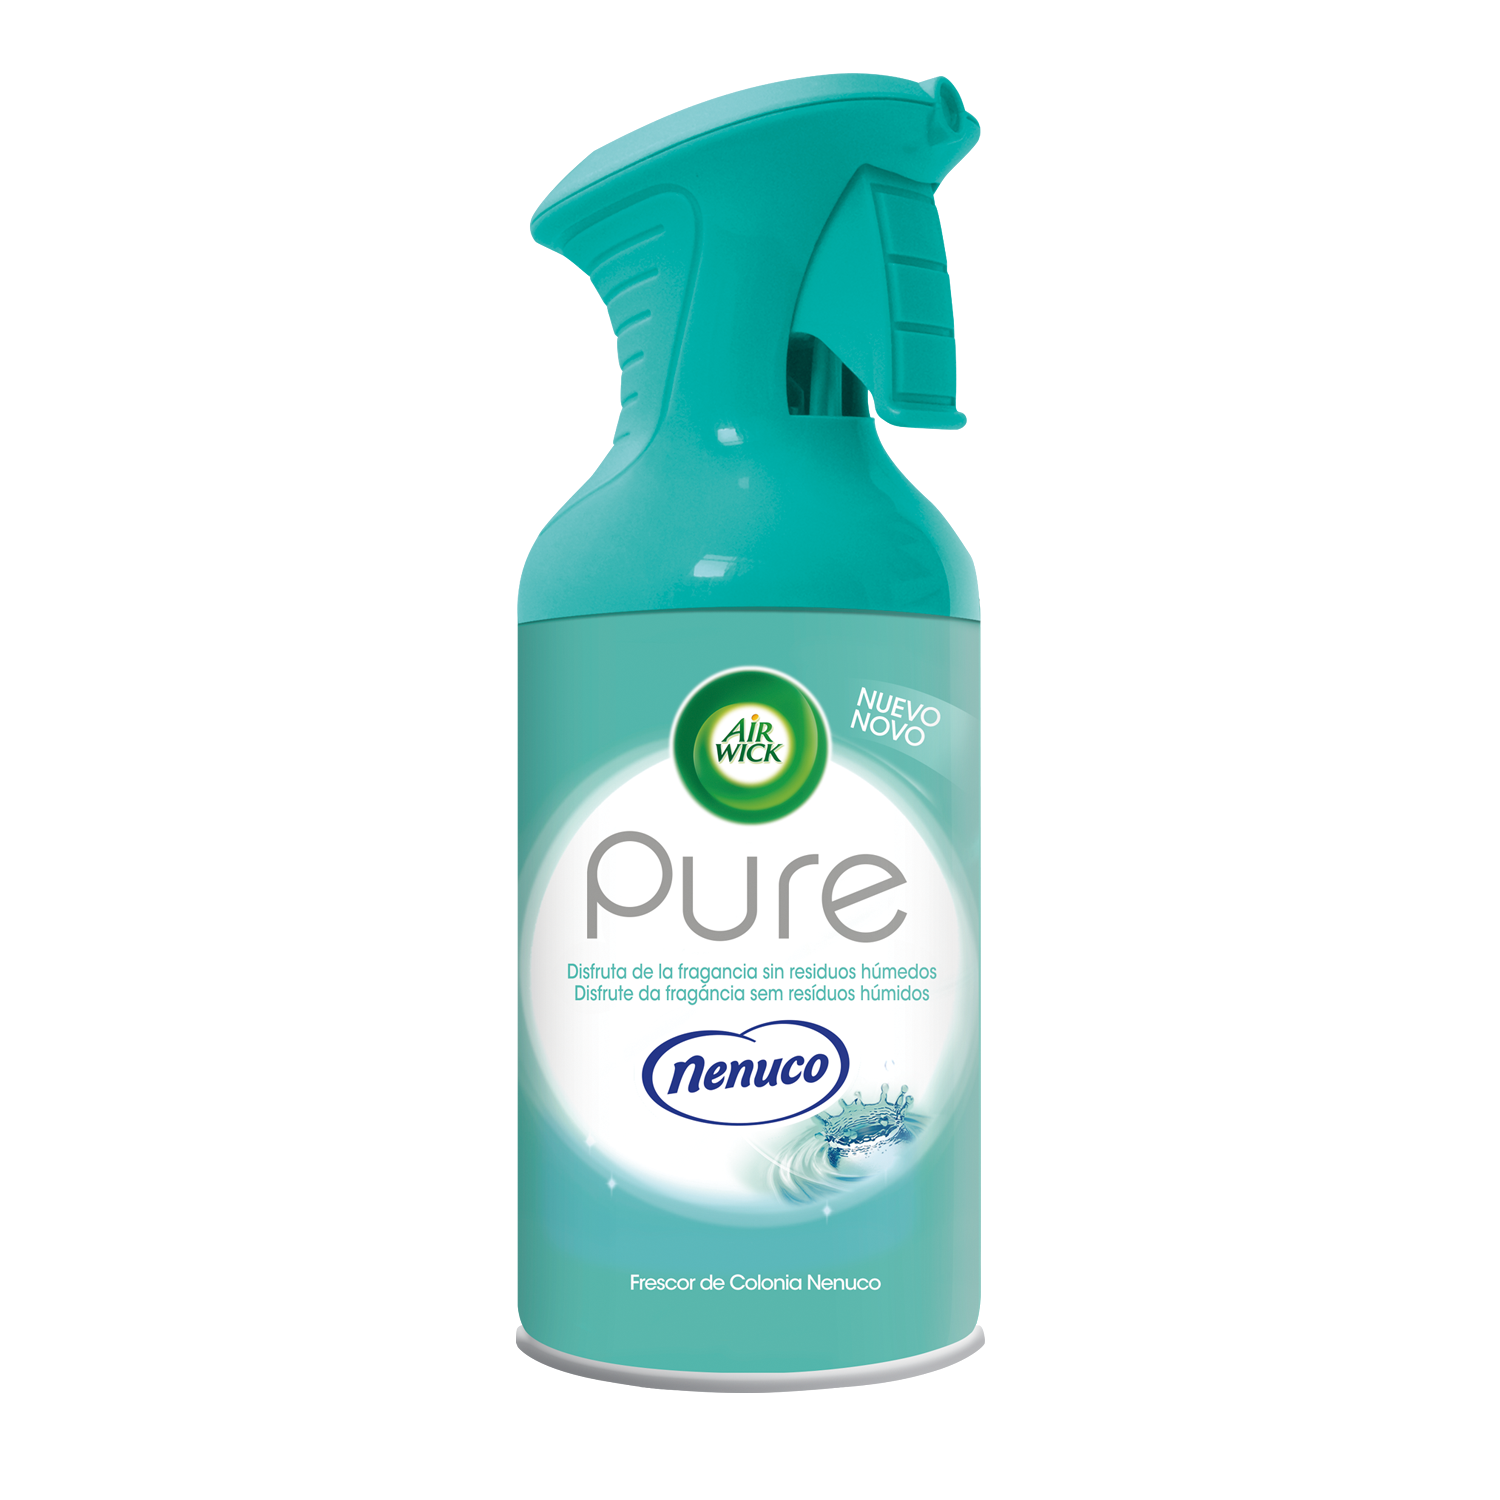 Air Wick pure ambientador frescor colonia nenuco bebe de 25cl. en spray